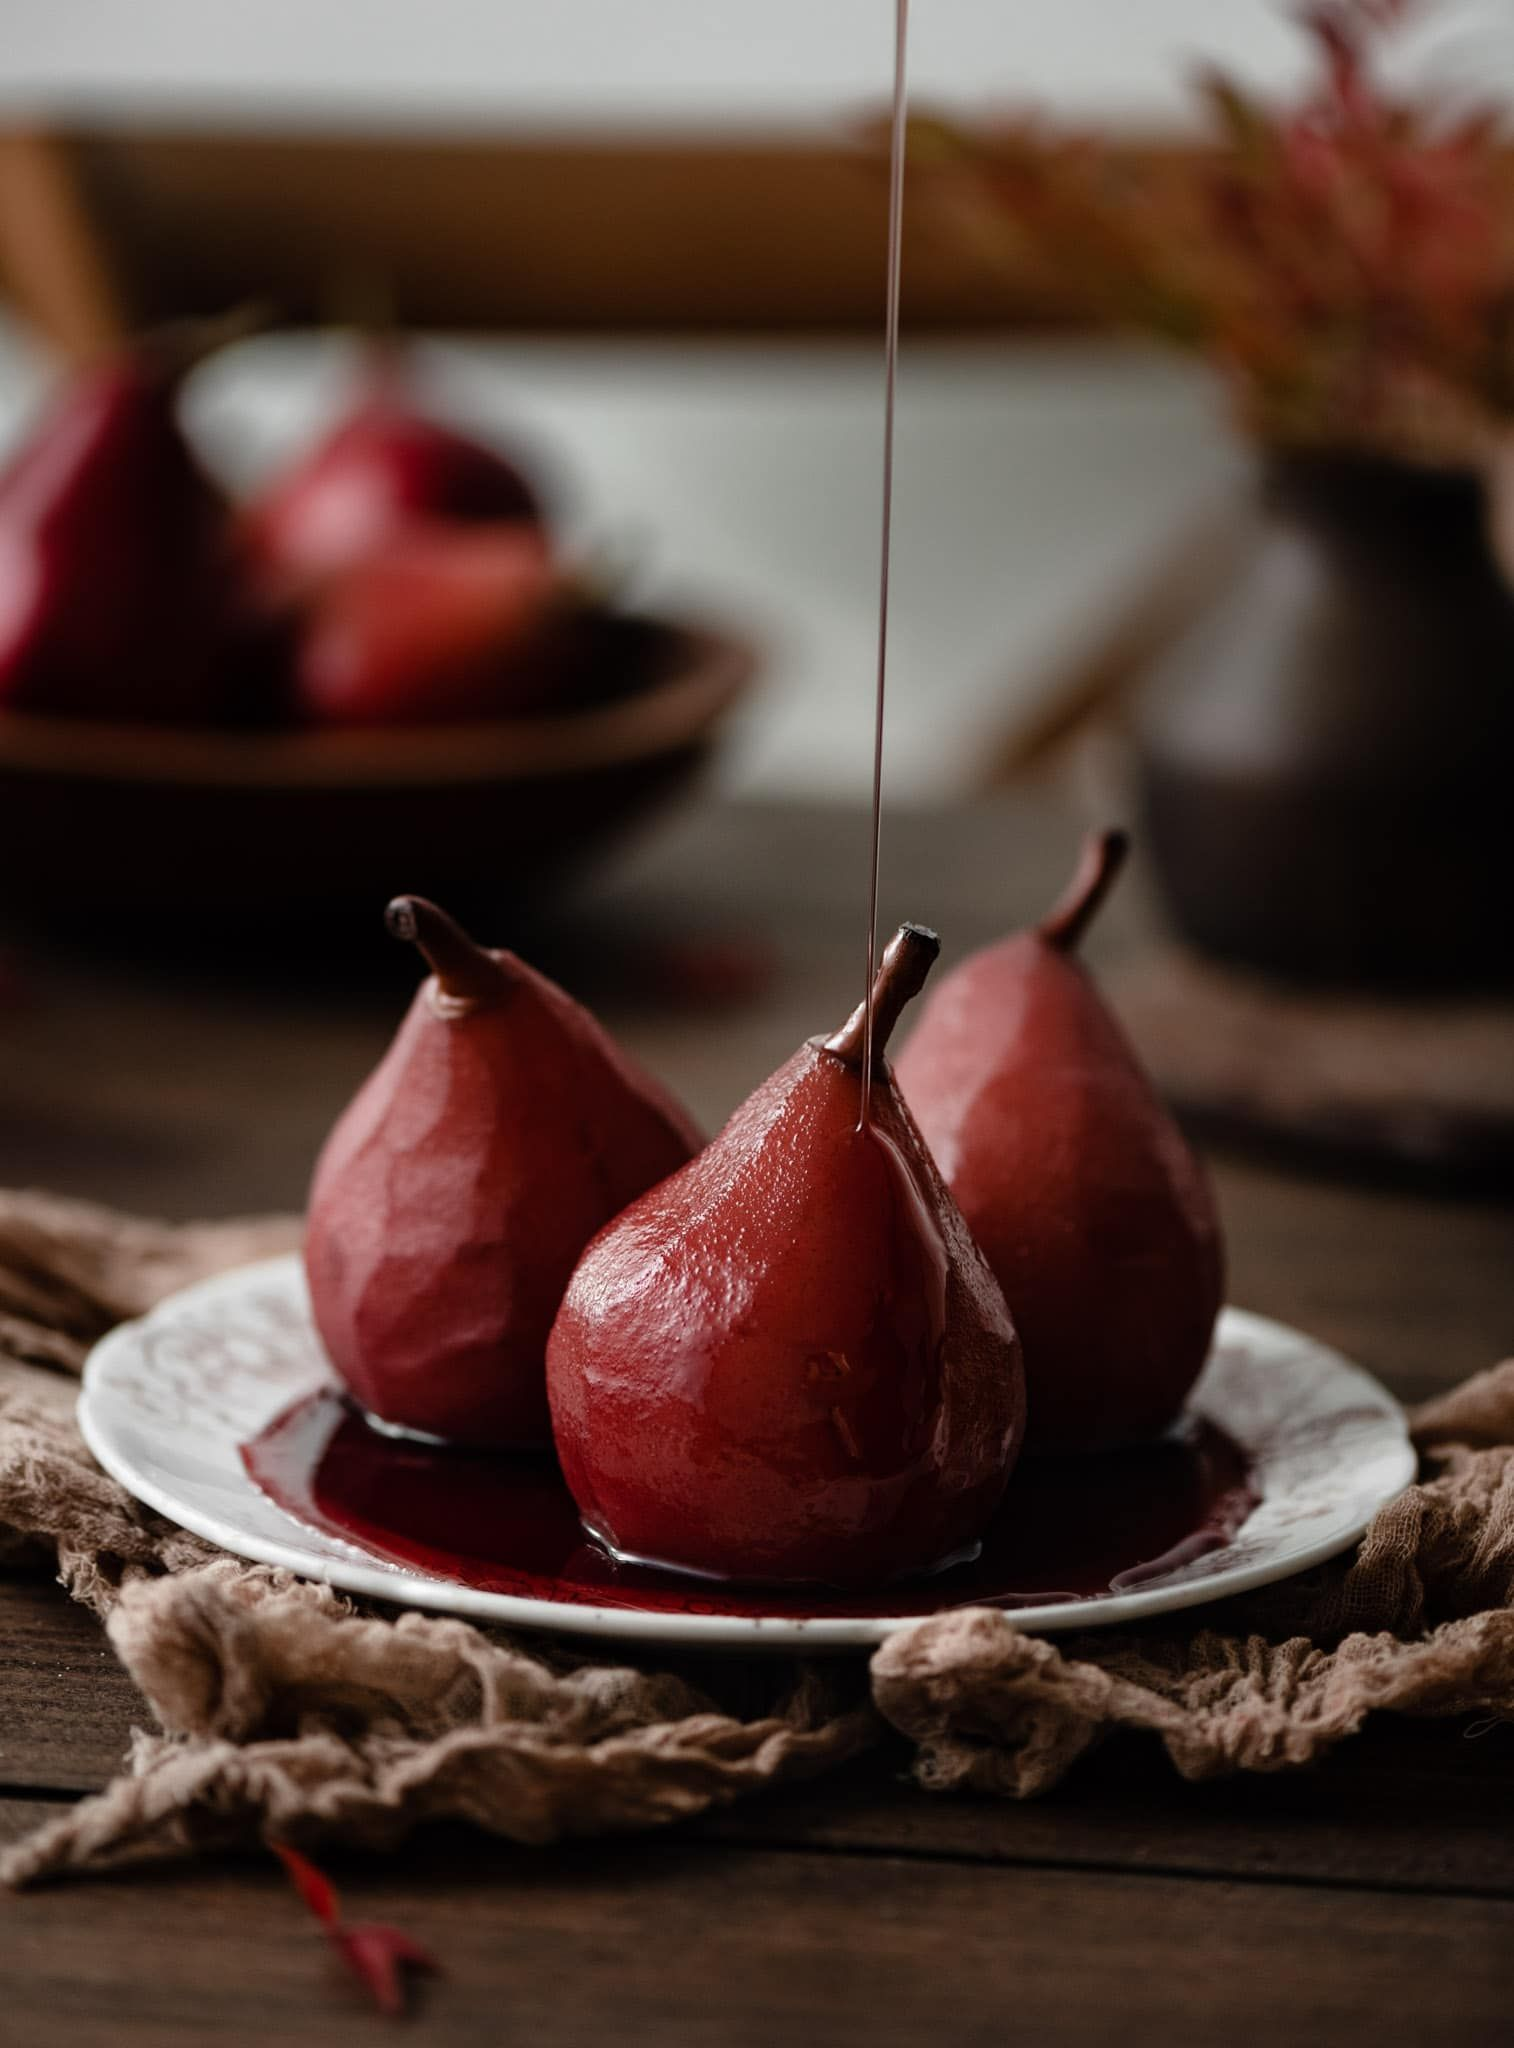 Wine Poached Pears Two Cups Flour Recipe In 2020 Wine Poached Pears Poached Pears Poached Pears Recipe